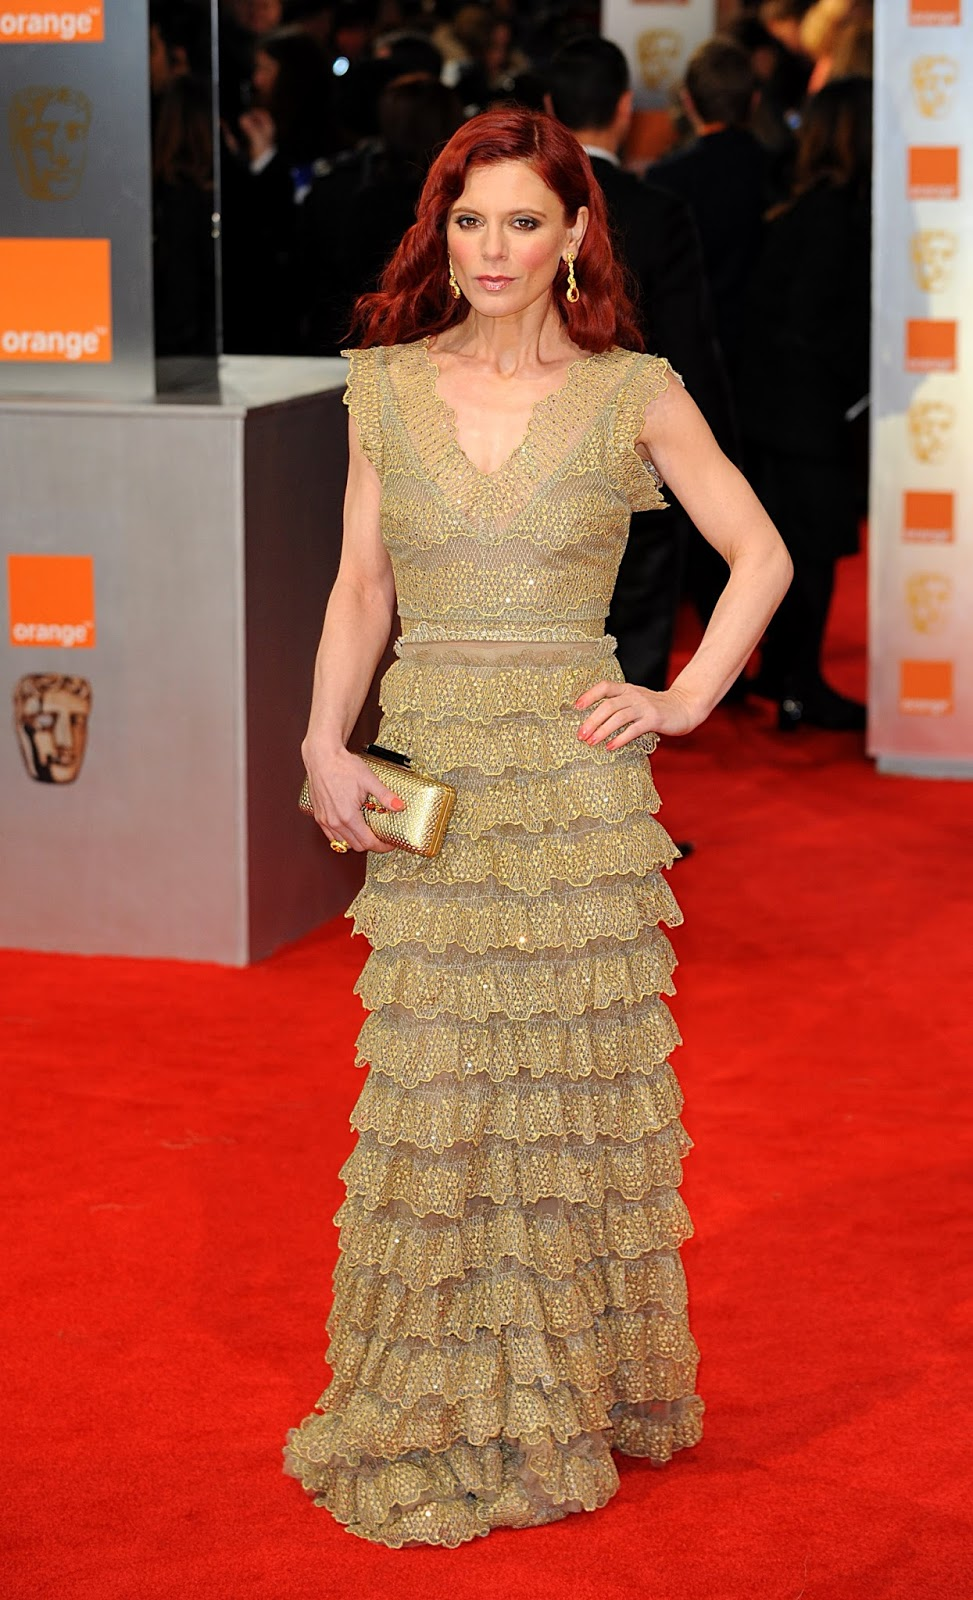 Fox Hot Pics, Emilia Fox Images, Emilia Fox Photo Gallery, Emilia Fox